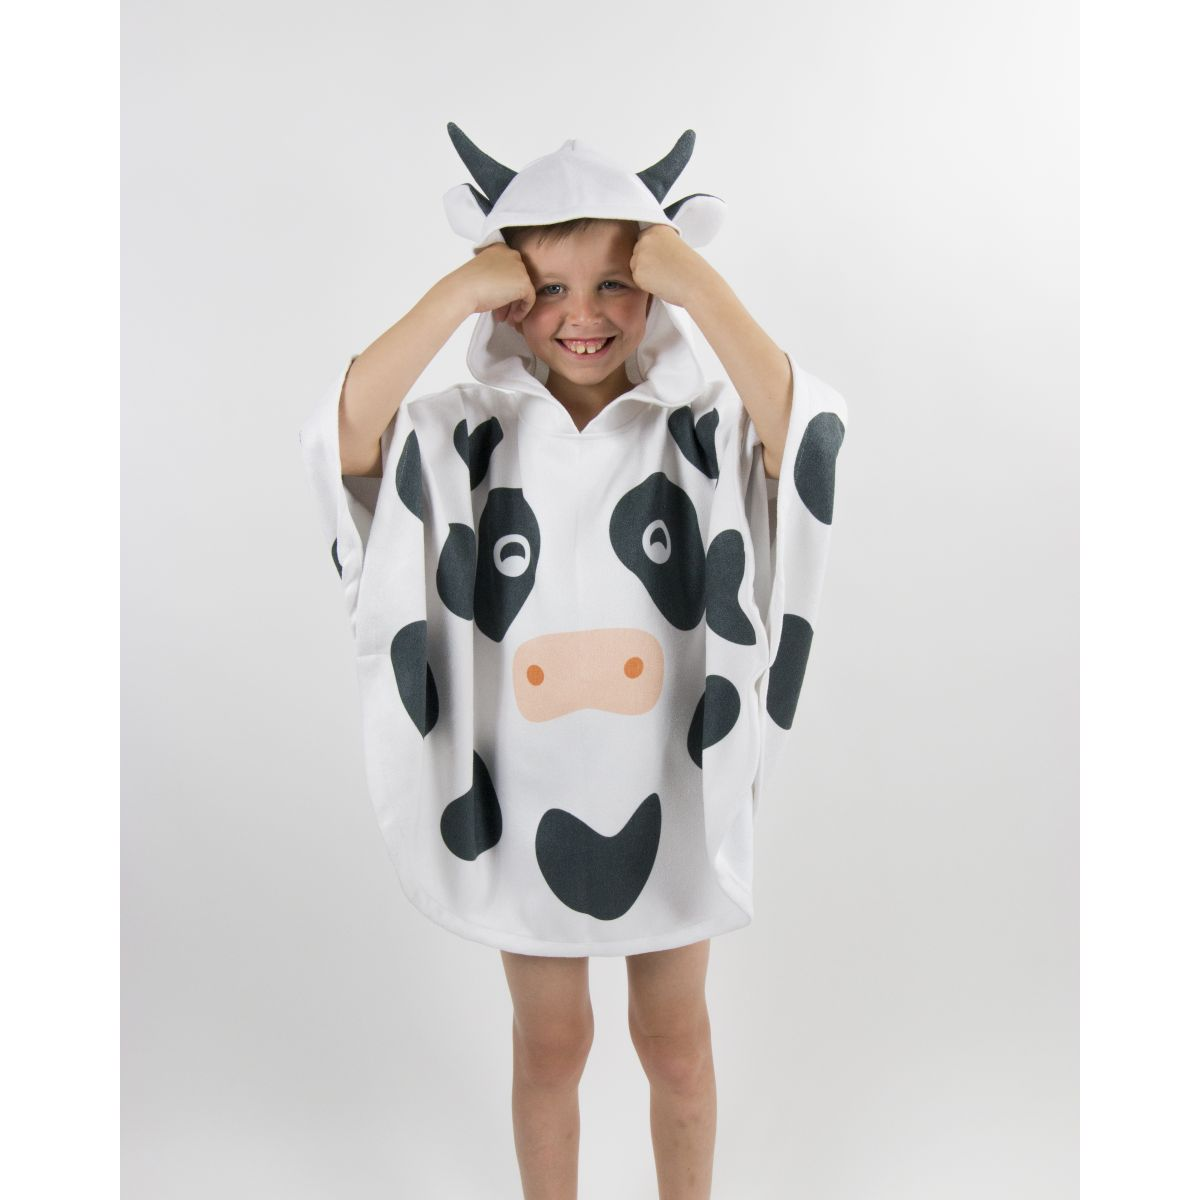 poncho de plage enfant en microfibre anuanua imprim vache vasion. Black Bedroom Furniture Sets. Home Design Ideas